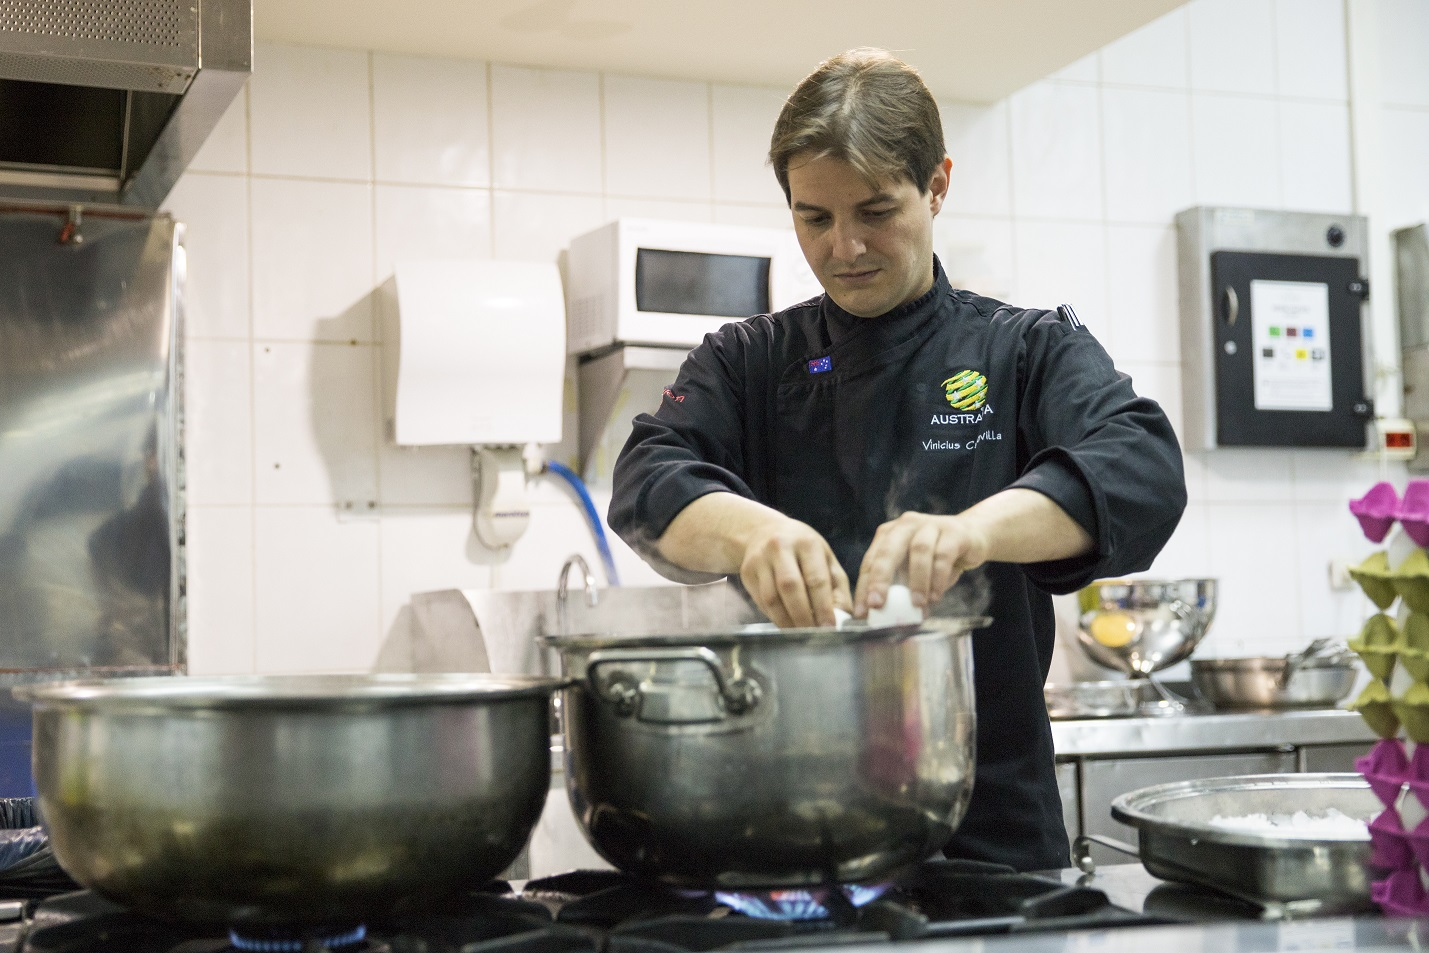 Vini Capovilla is the Socceroos and Matildas chef